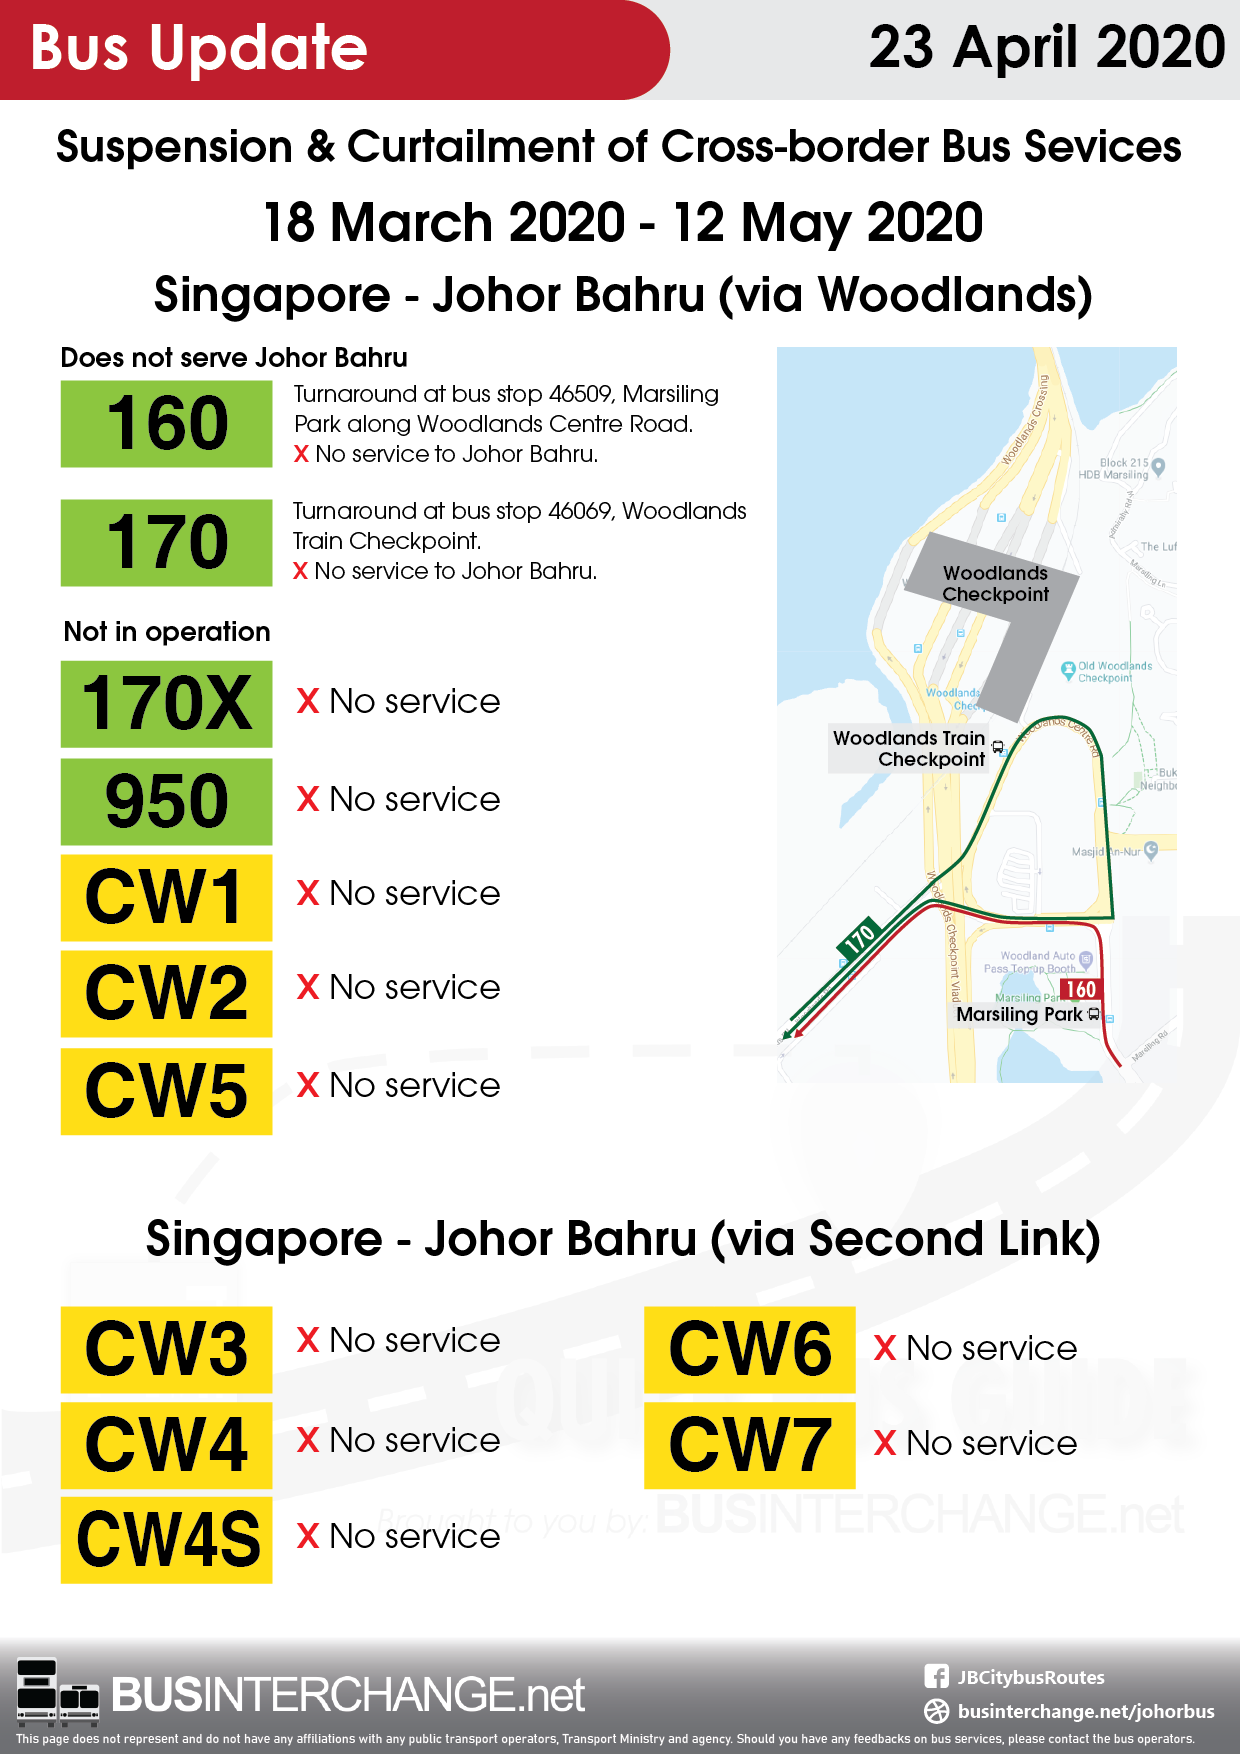 Suspension and curtailment of cross-border bus services between Singapore and Johor Bahru from 18 March 2020 to 12 May 2020.